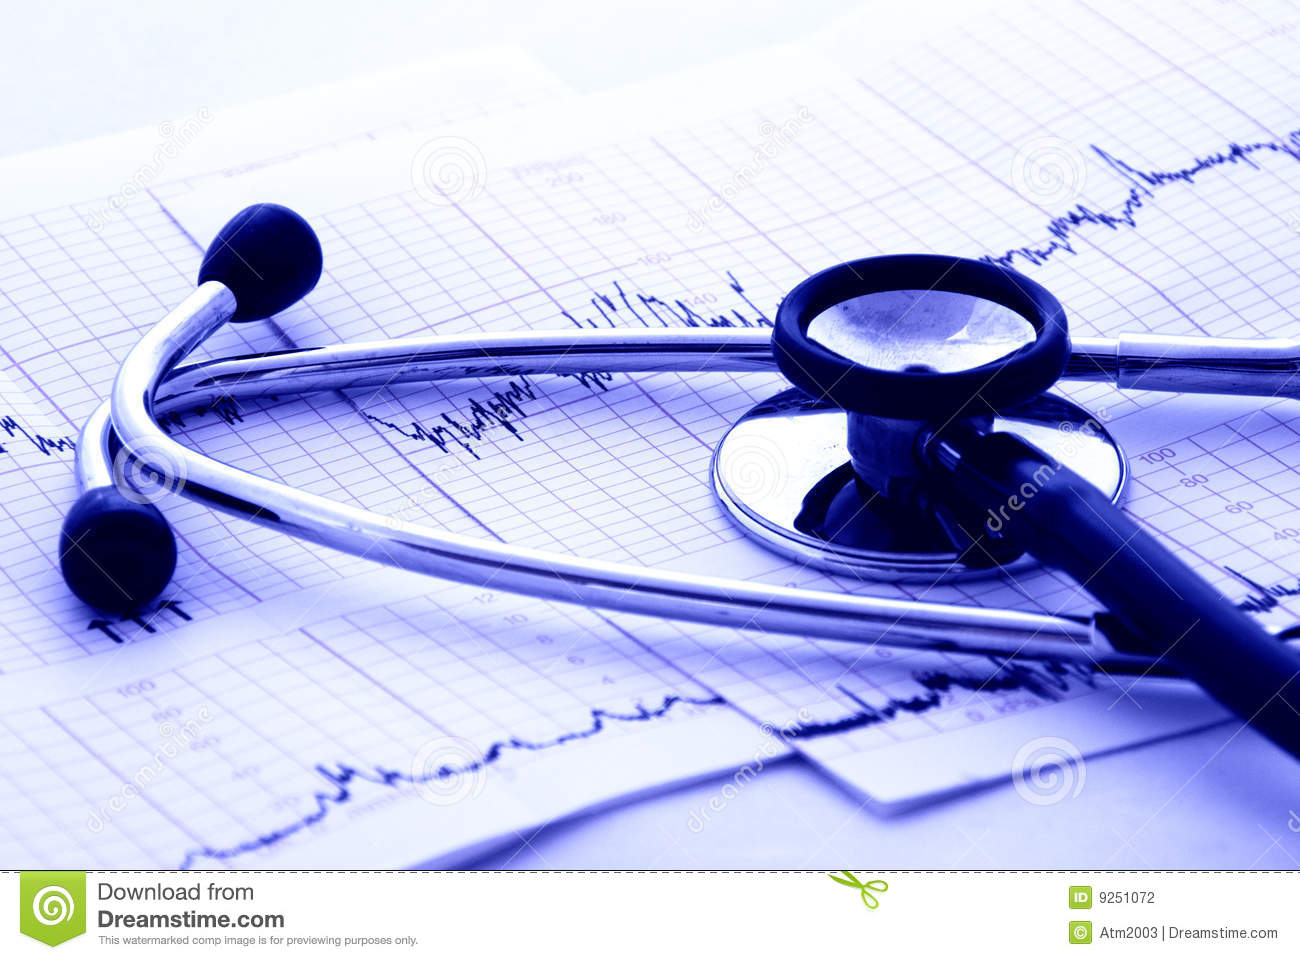 Cardiology Test And Stethoscope Stock Photography - Image: 9251072